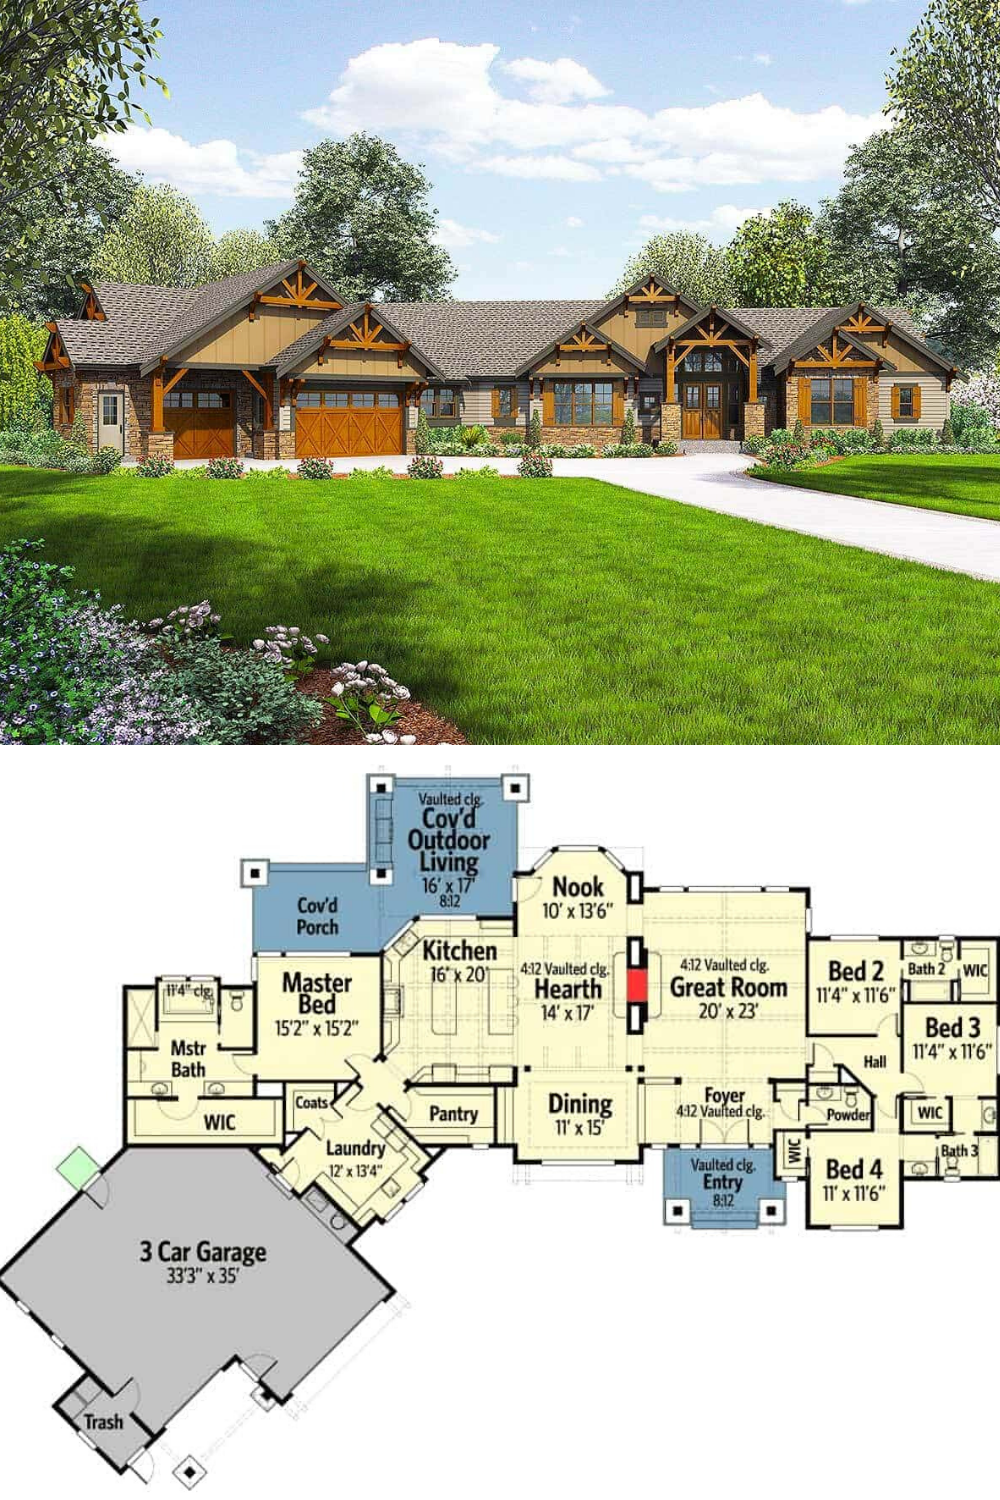 Spectacular 4 Bedroom Mountain Craftsman Single Story Home Floor Plan In 2020 Rustic House Plans Craftsman House Plans House Blueprints